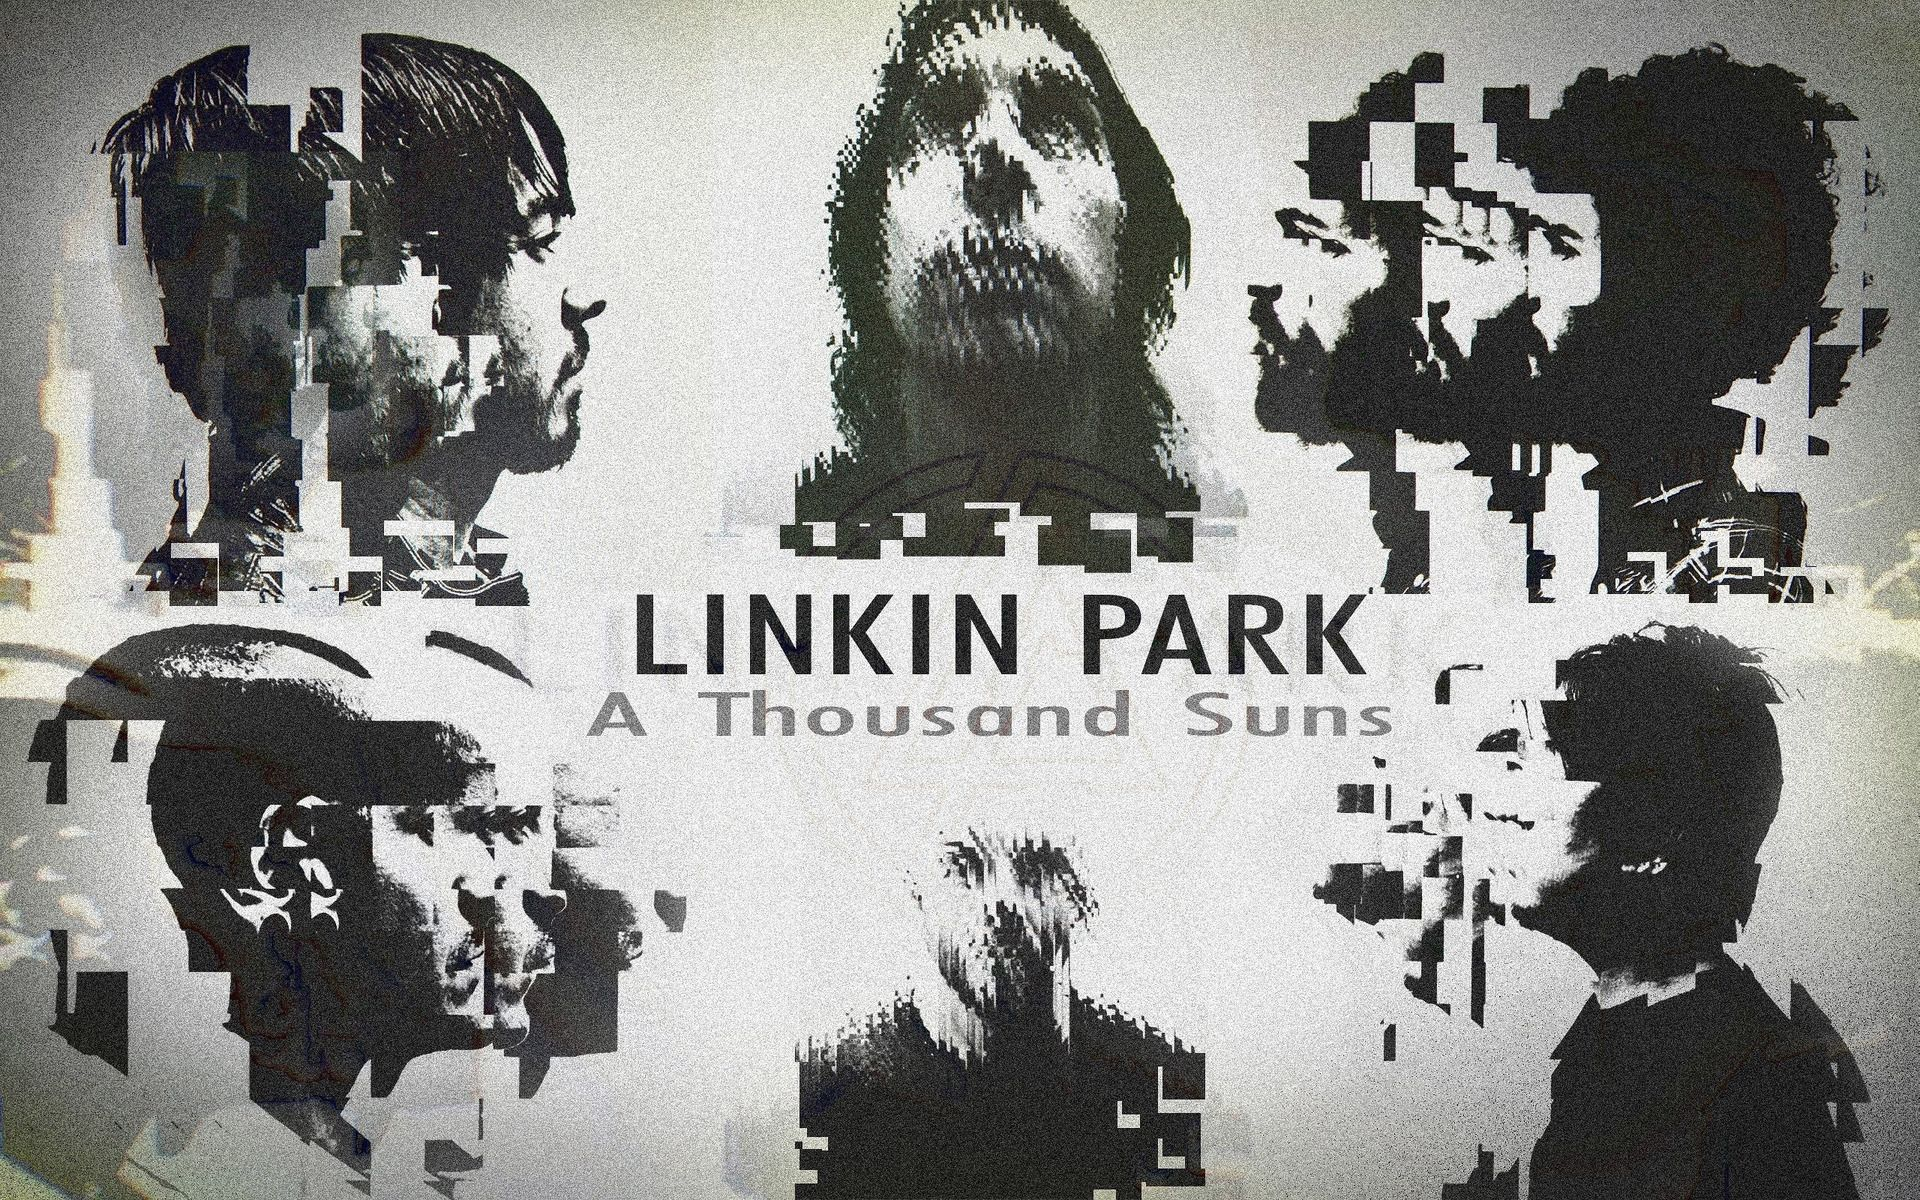 linkin-park-meeting-of-a-thousand-suns-documentary-youtube